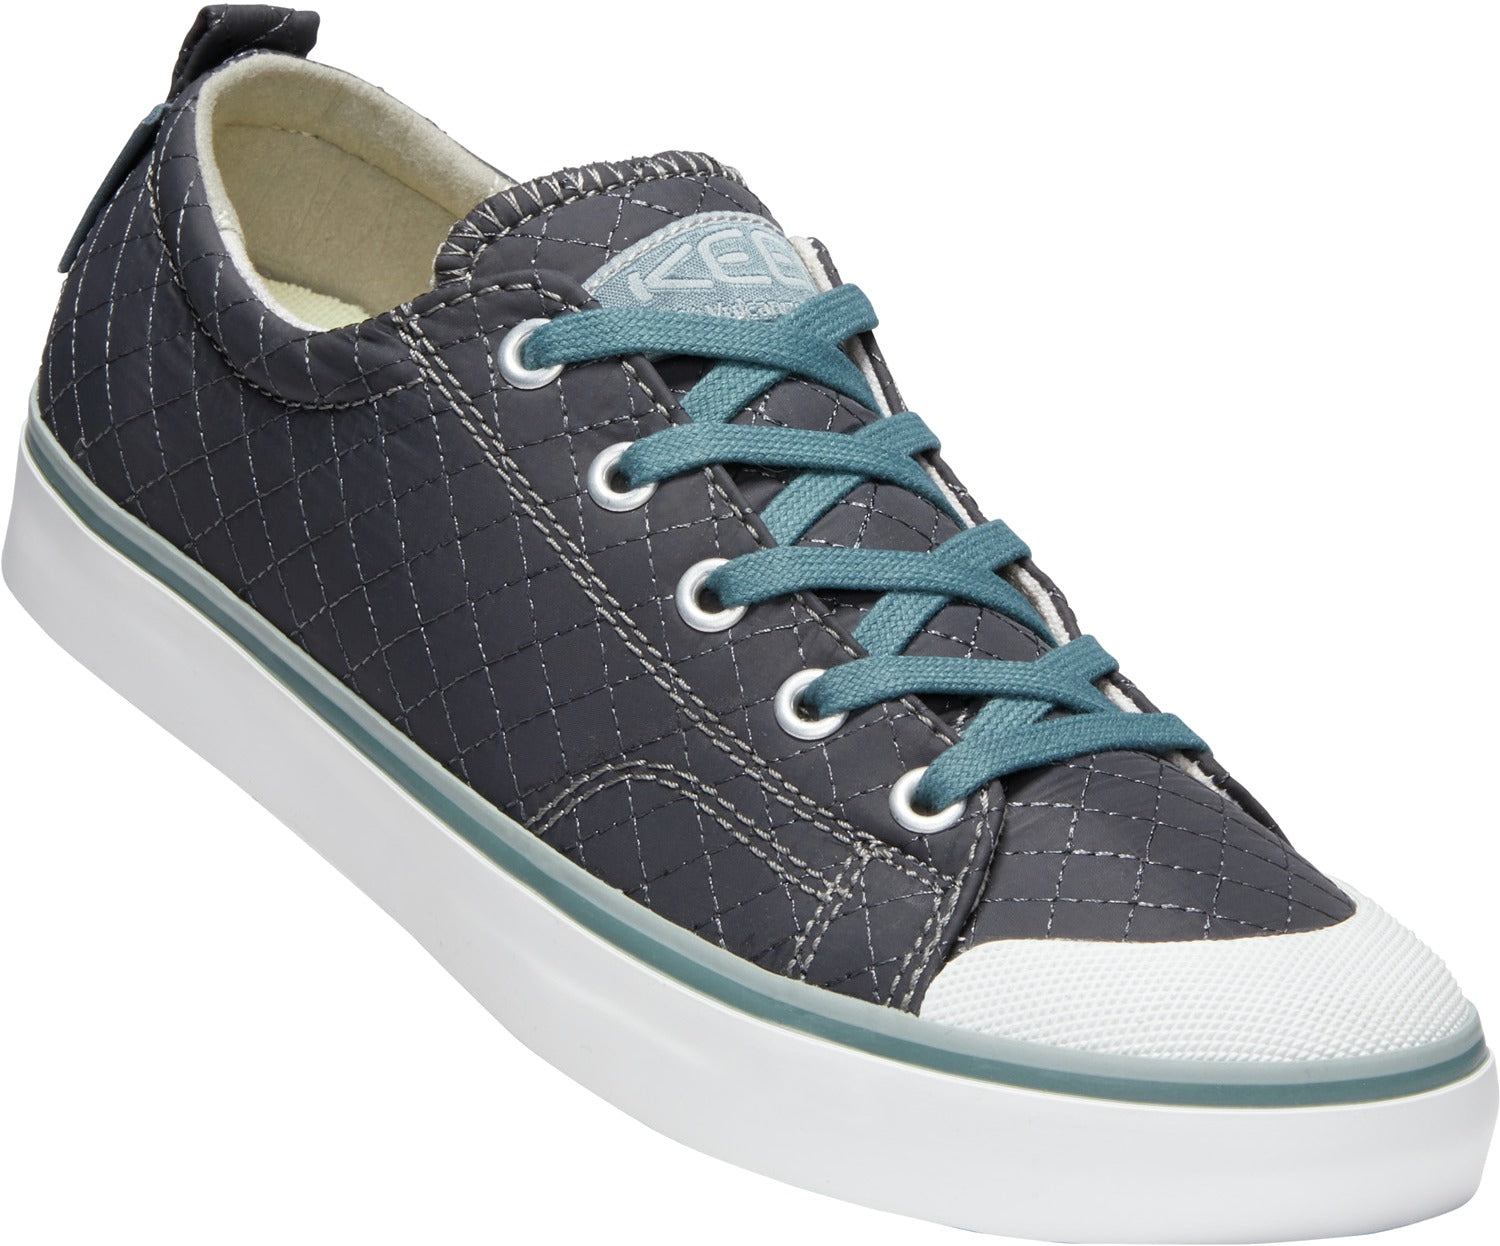 Elsa II Quilted Sneaker - Stormy Weather Blue / Wrought Iron Grey